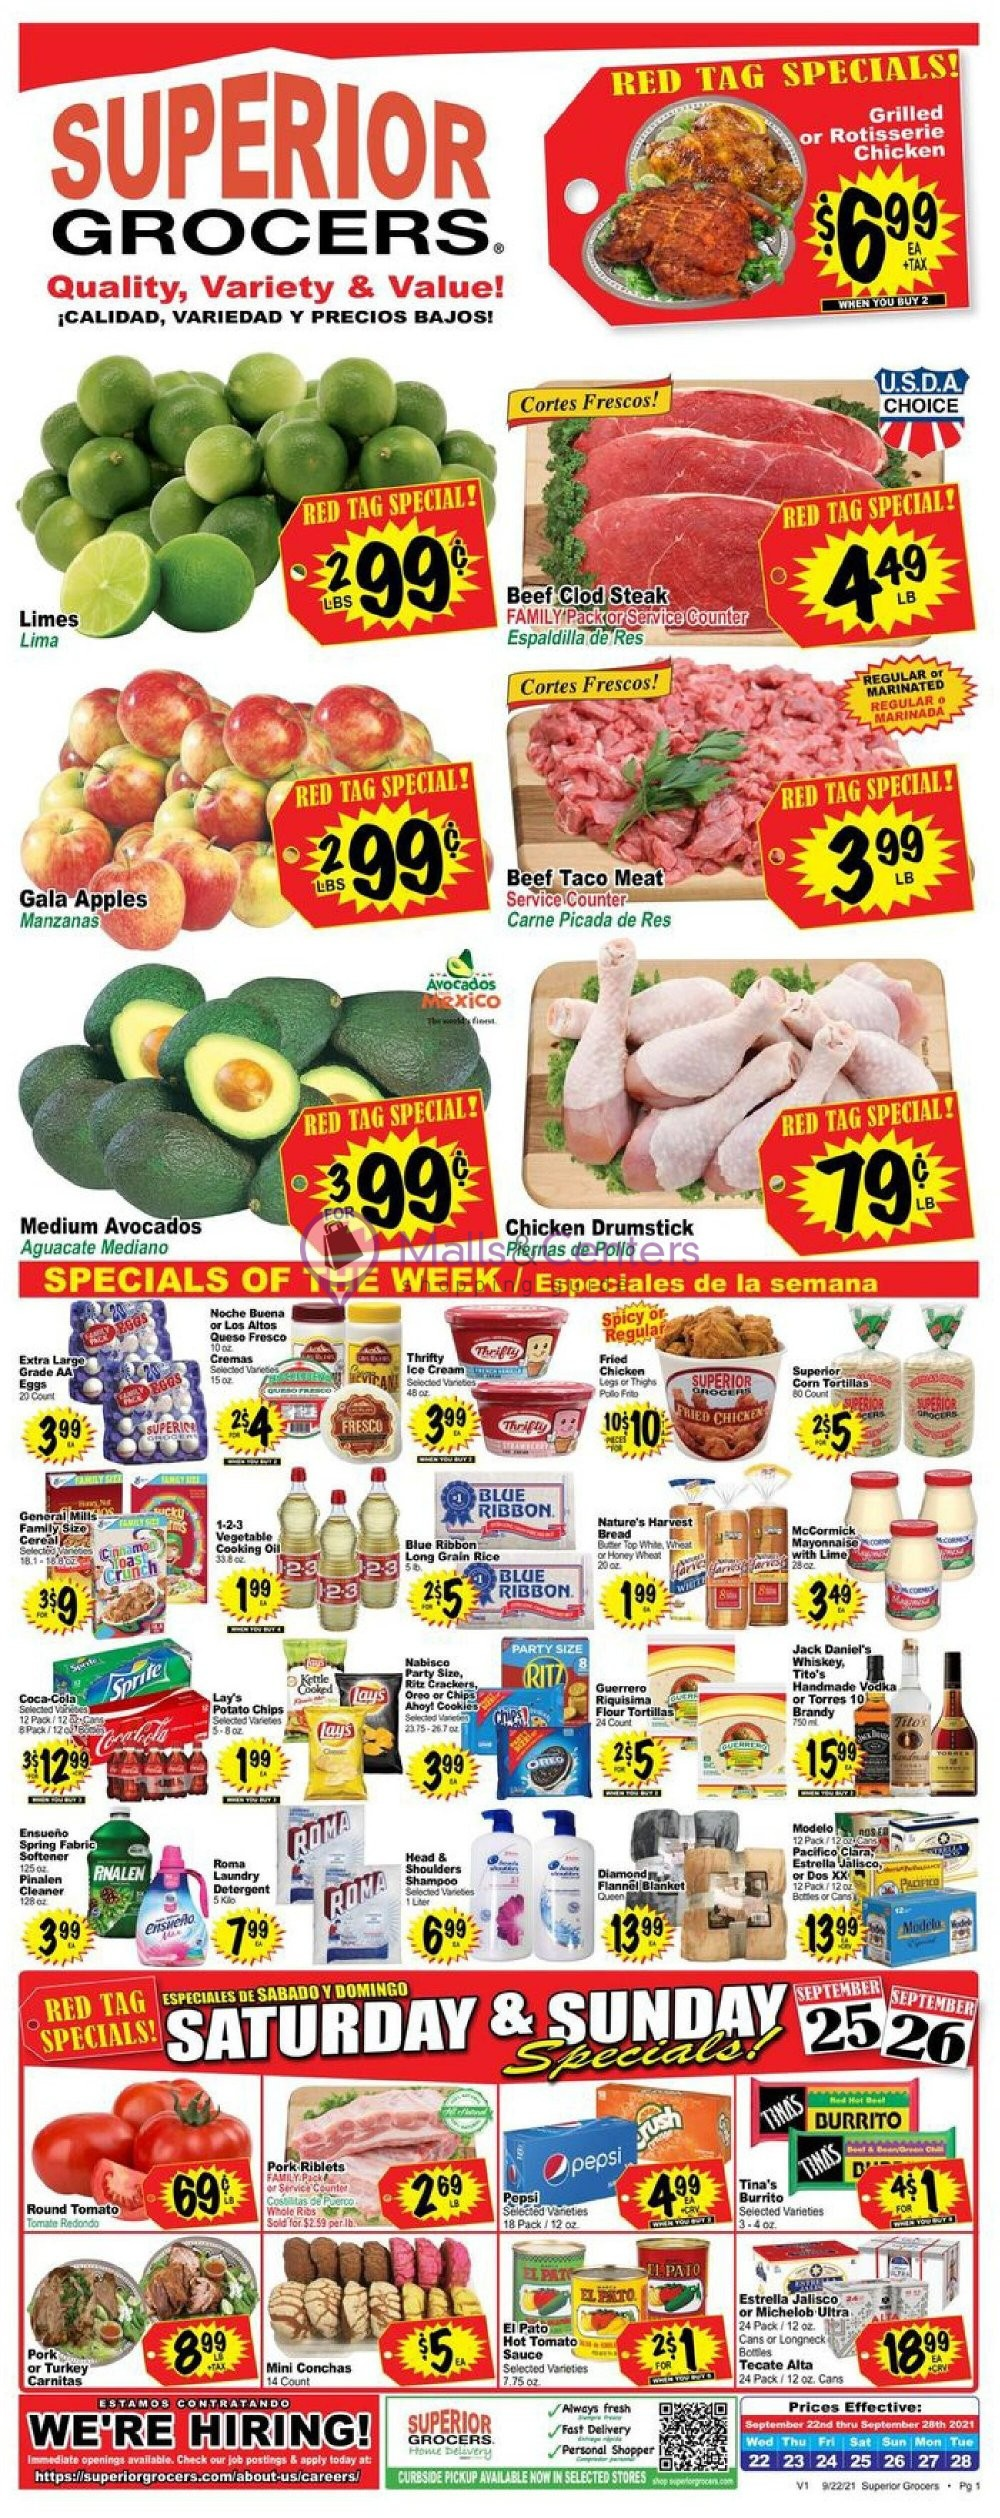 weekly ads Superior Grocers - page 1 - mallscenters.com